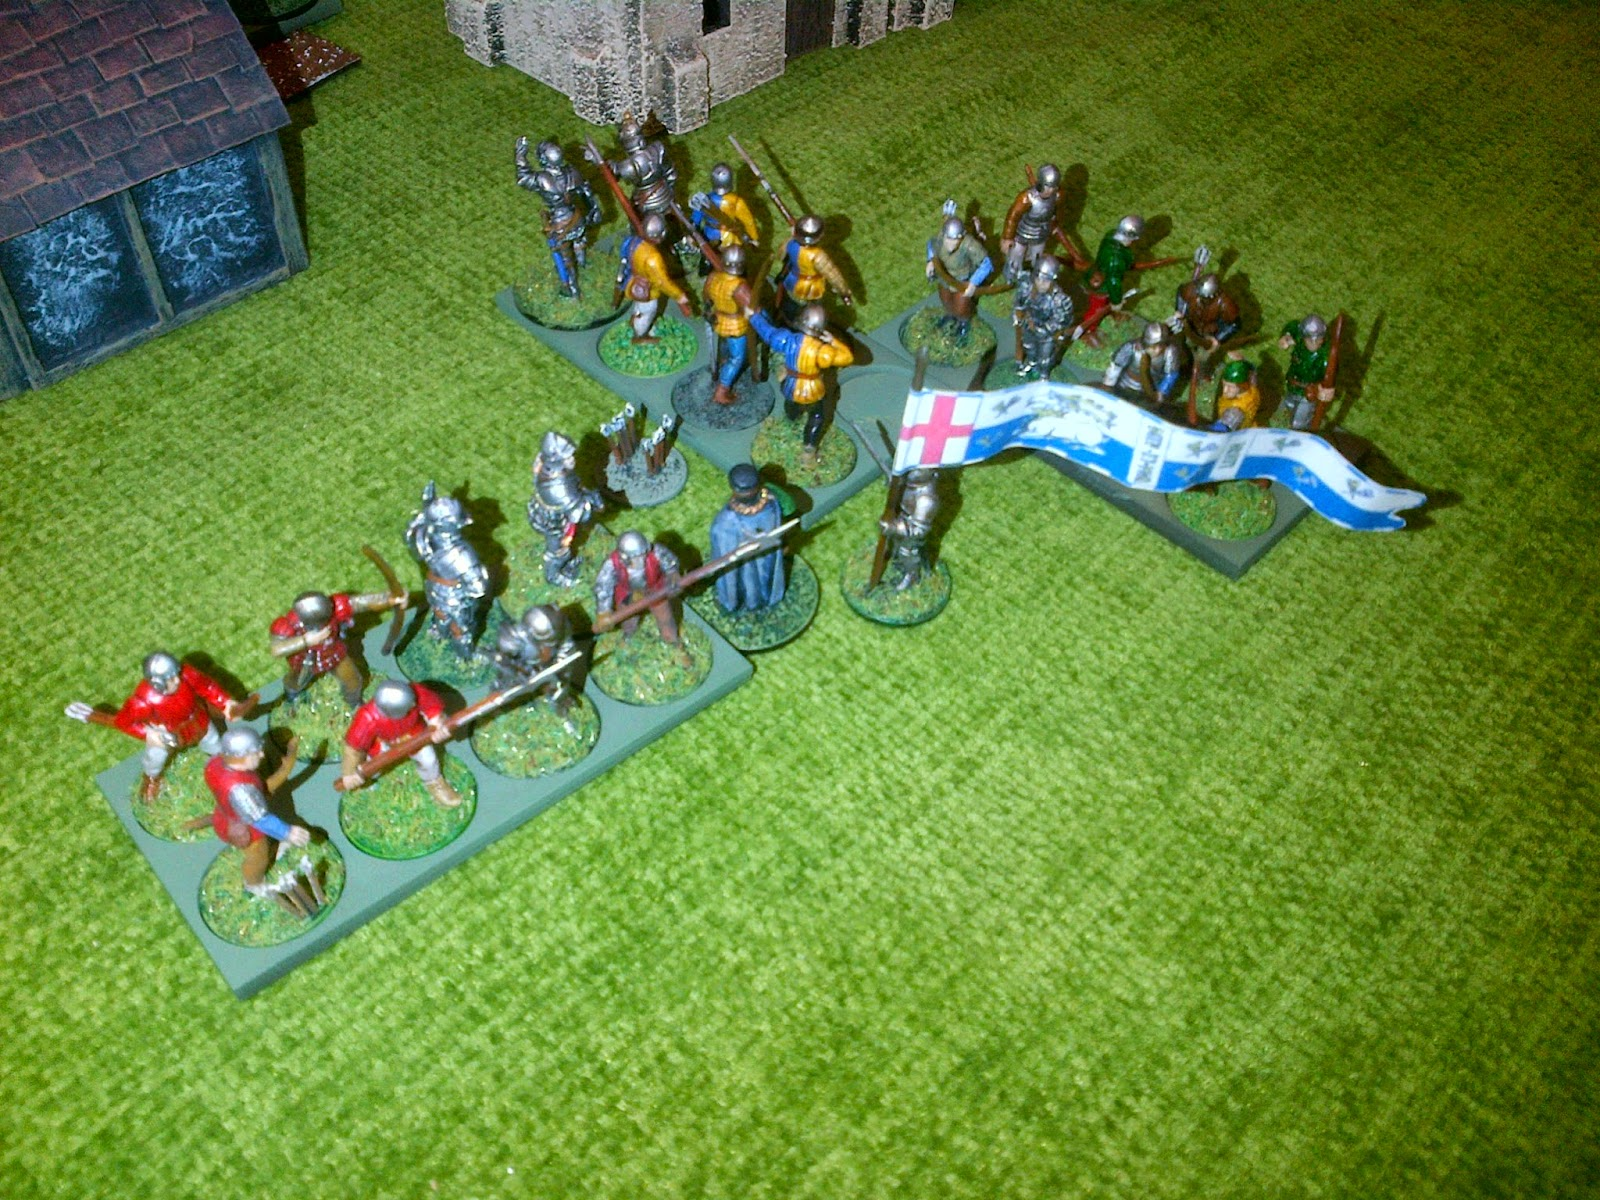 an analysis of the first battle of st albans Shakespeare's richard iii covers events in the latter years of the wars of the roses — that is, from the attainder and execution of george, duke.